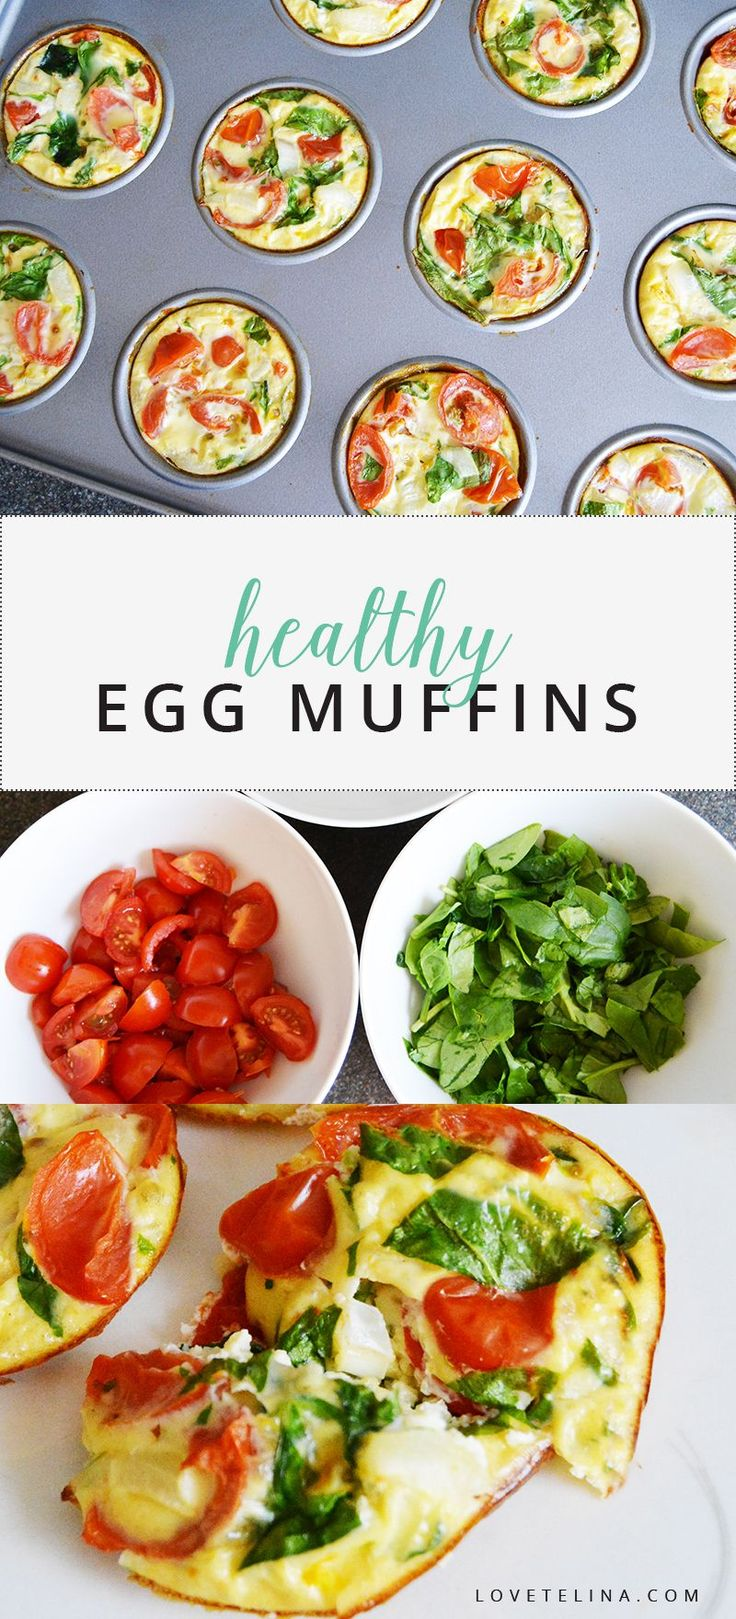 Breakfast is the most important meal of the day, so fueling up with something healthy and nutritious is ideal. Today, I'm sharing a breakfast recipe that is just that. These healthy egg muffins are loaded with veggies, high in protein and easy to make. Oh